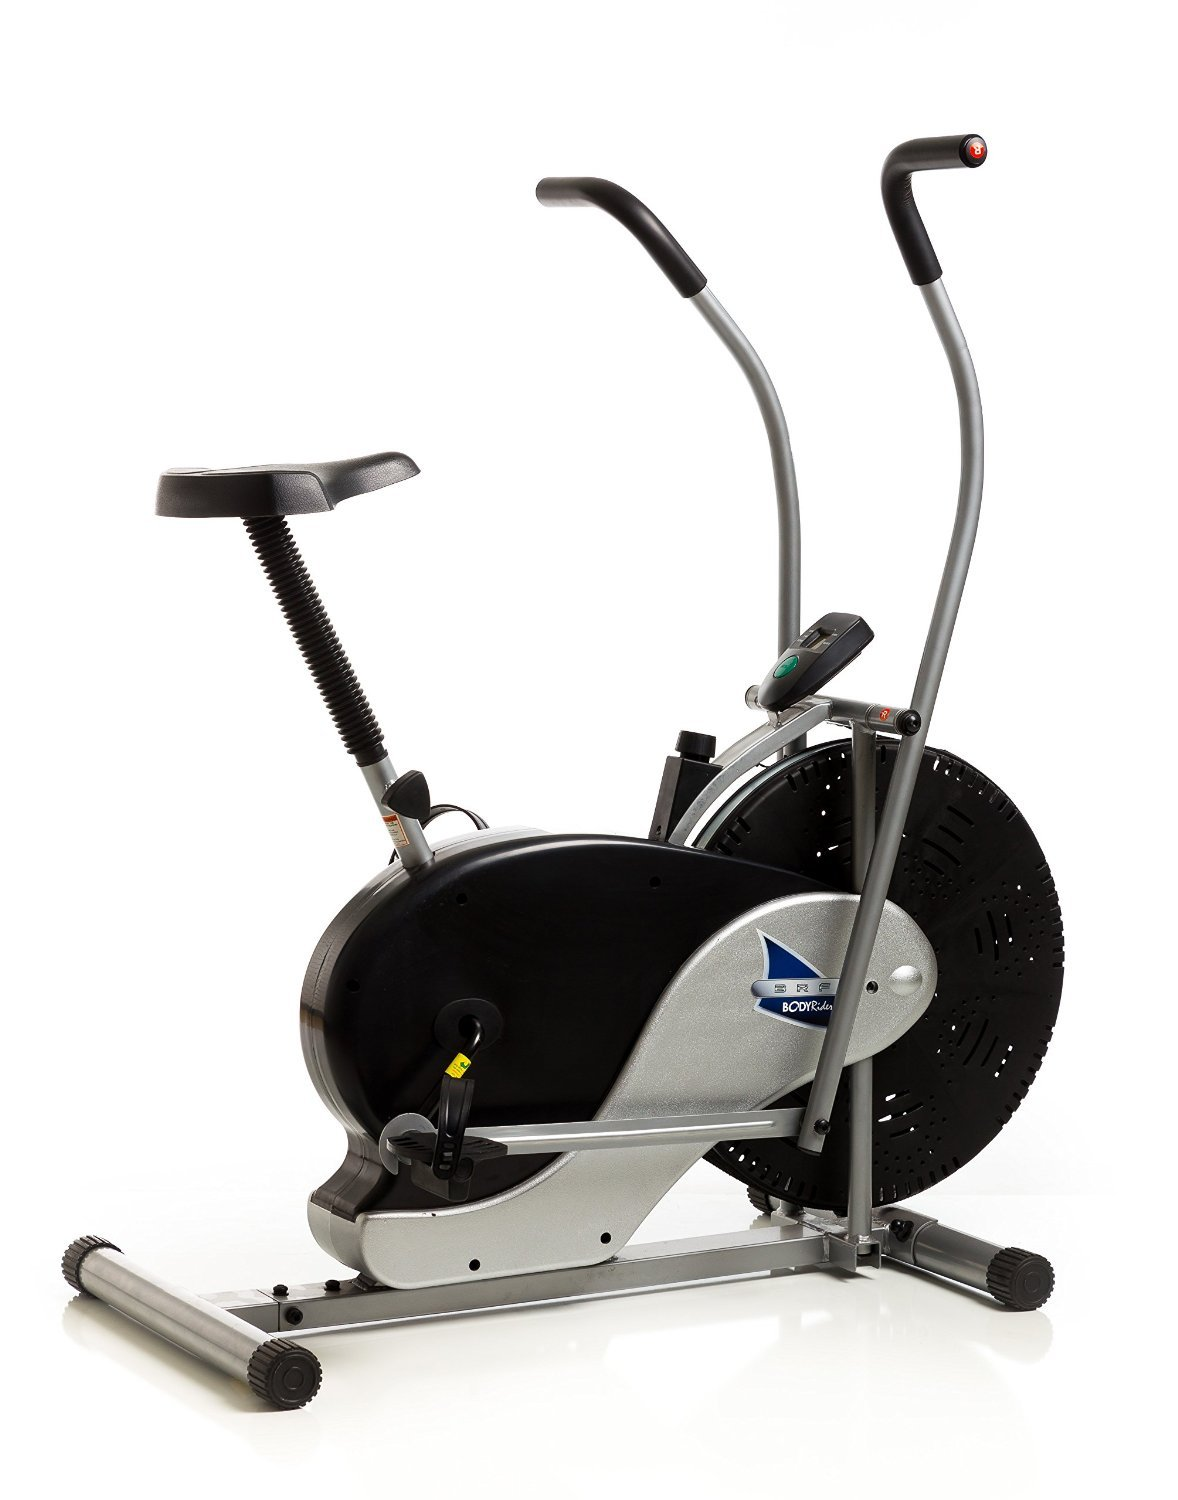 Body Fitness Exercise Bicycle Bike Max Stationary Upright Rider With Cooling Fan